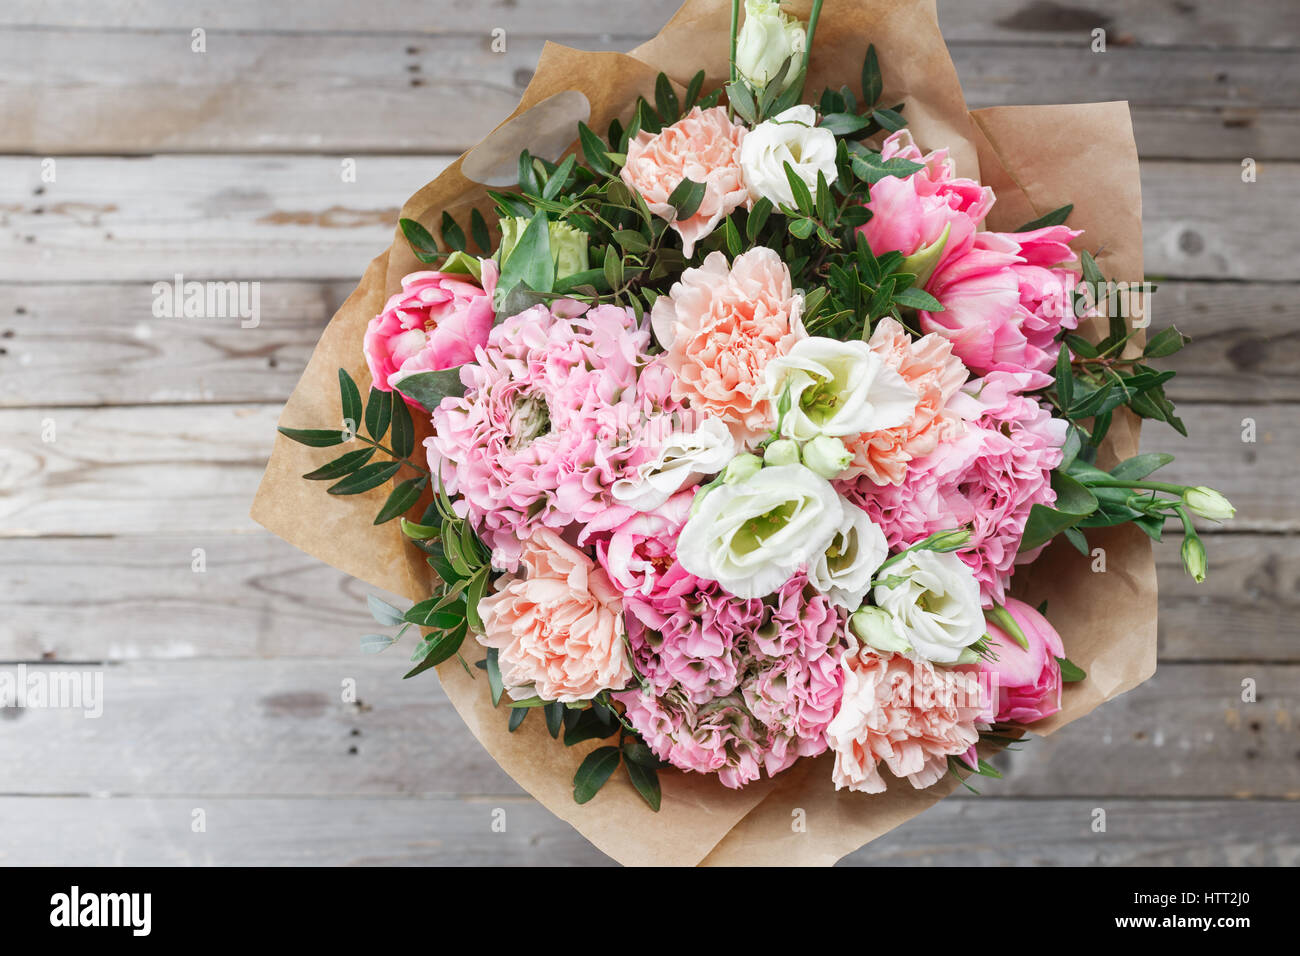 Luxury bouquet of different flowers in glass vase on wooden wall luxury bouquet of different flowers in glass vase on wooden wall copy space izmirmasajfo Gallery